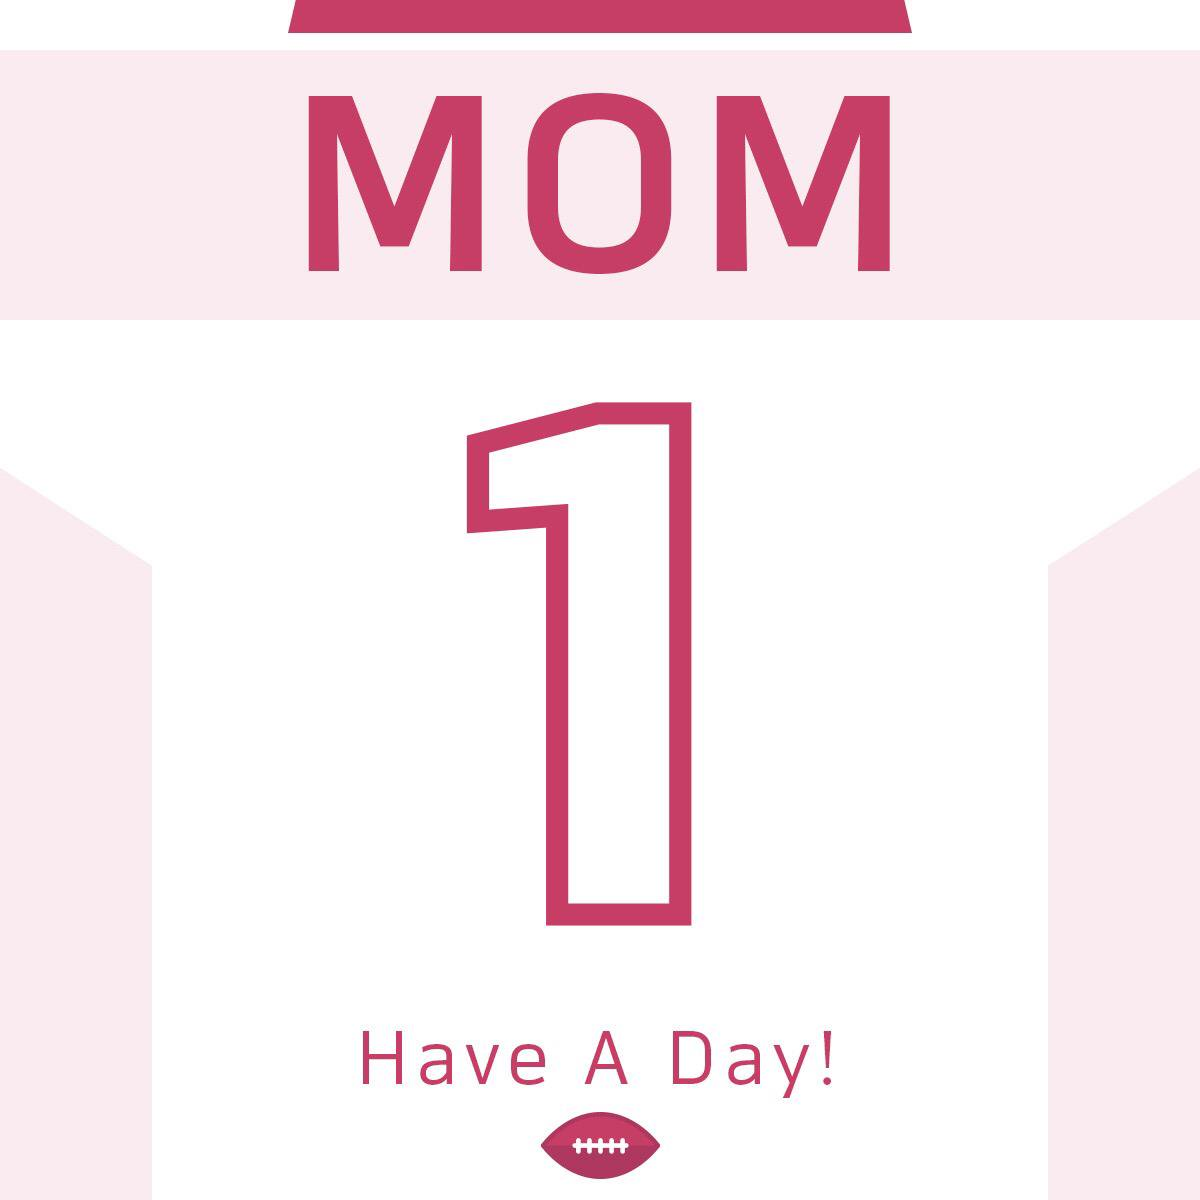 Have a day, MOM! #HappyMothersDay https://t.co/bkqmLTrR89